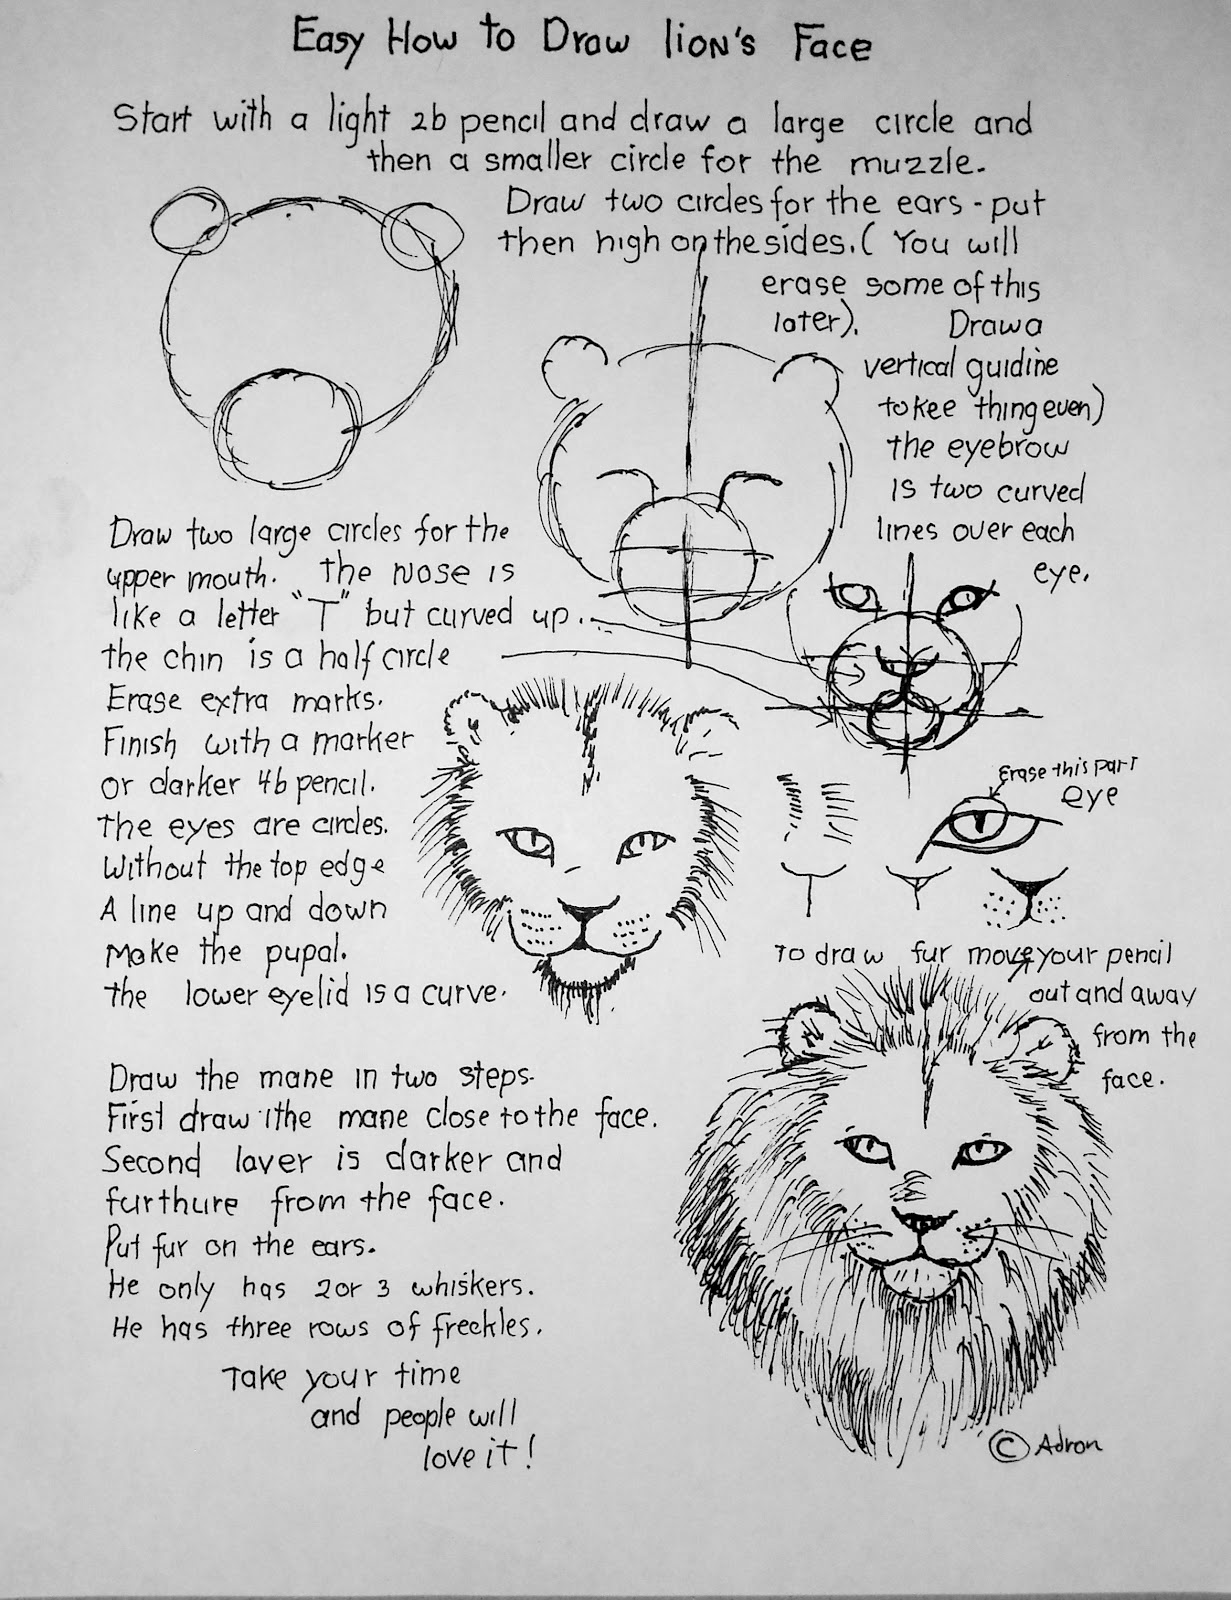 How To Draw Worksheets For The Young Artist How To Draw A Lion S Face Easy Lesson And Worksheet